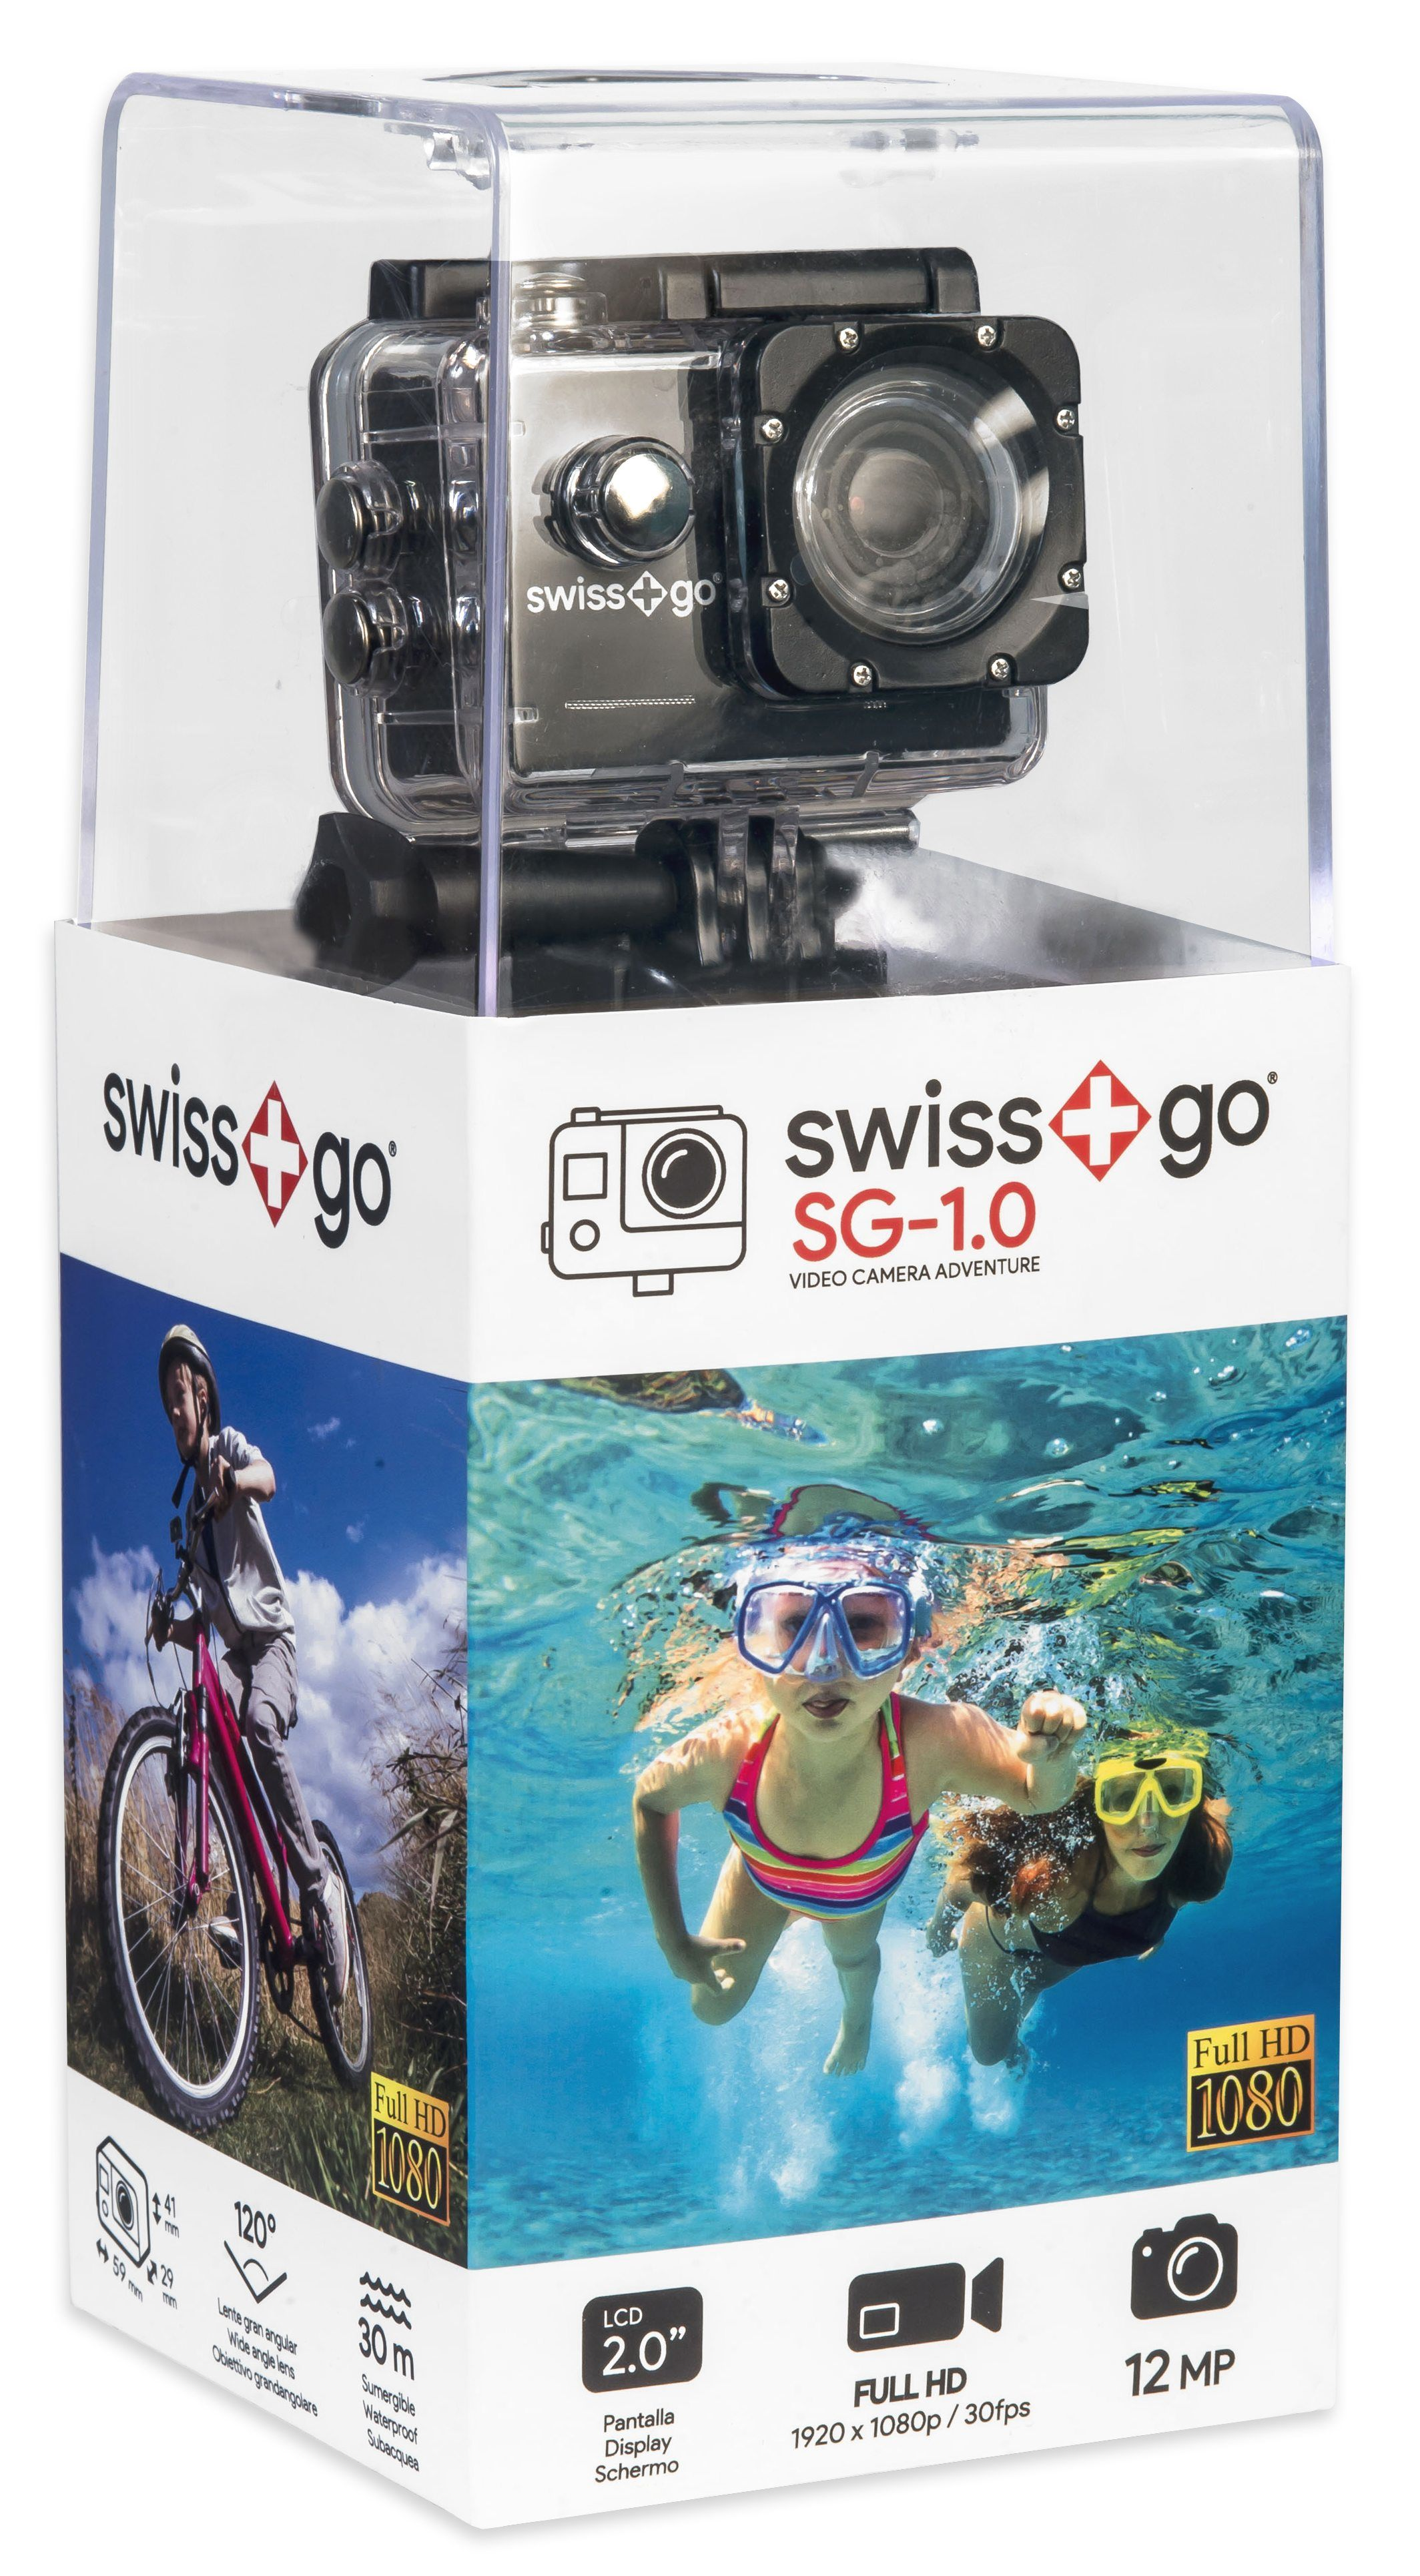 SWISS GO SG-1.8W 12MP WiFi FULL HD ACTION CAMERA ROSSA